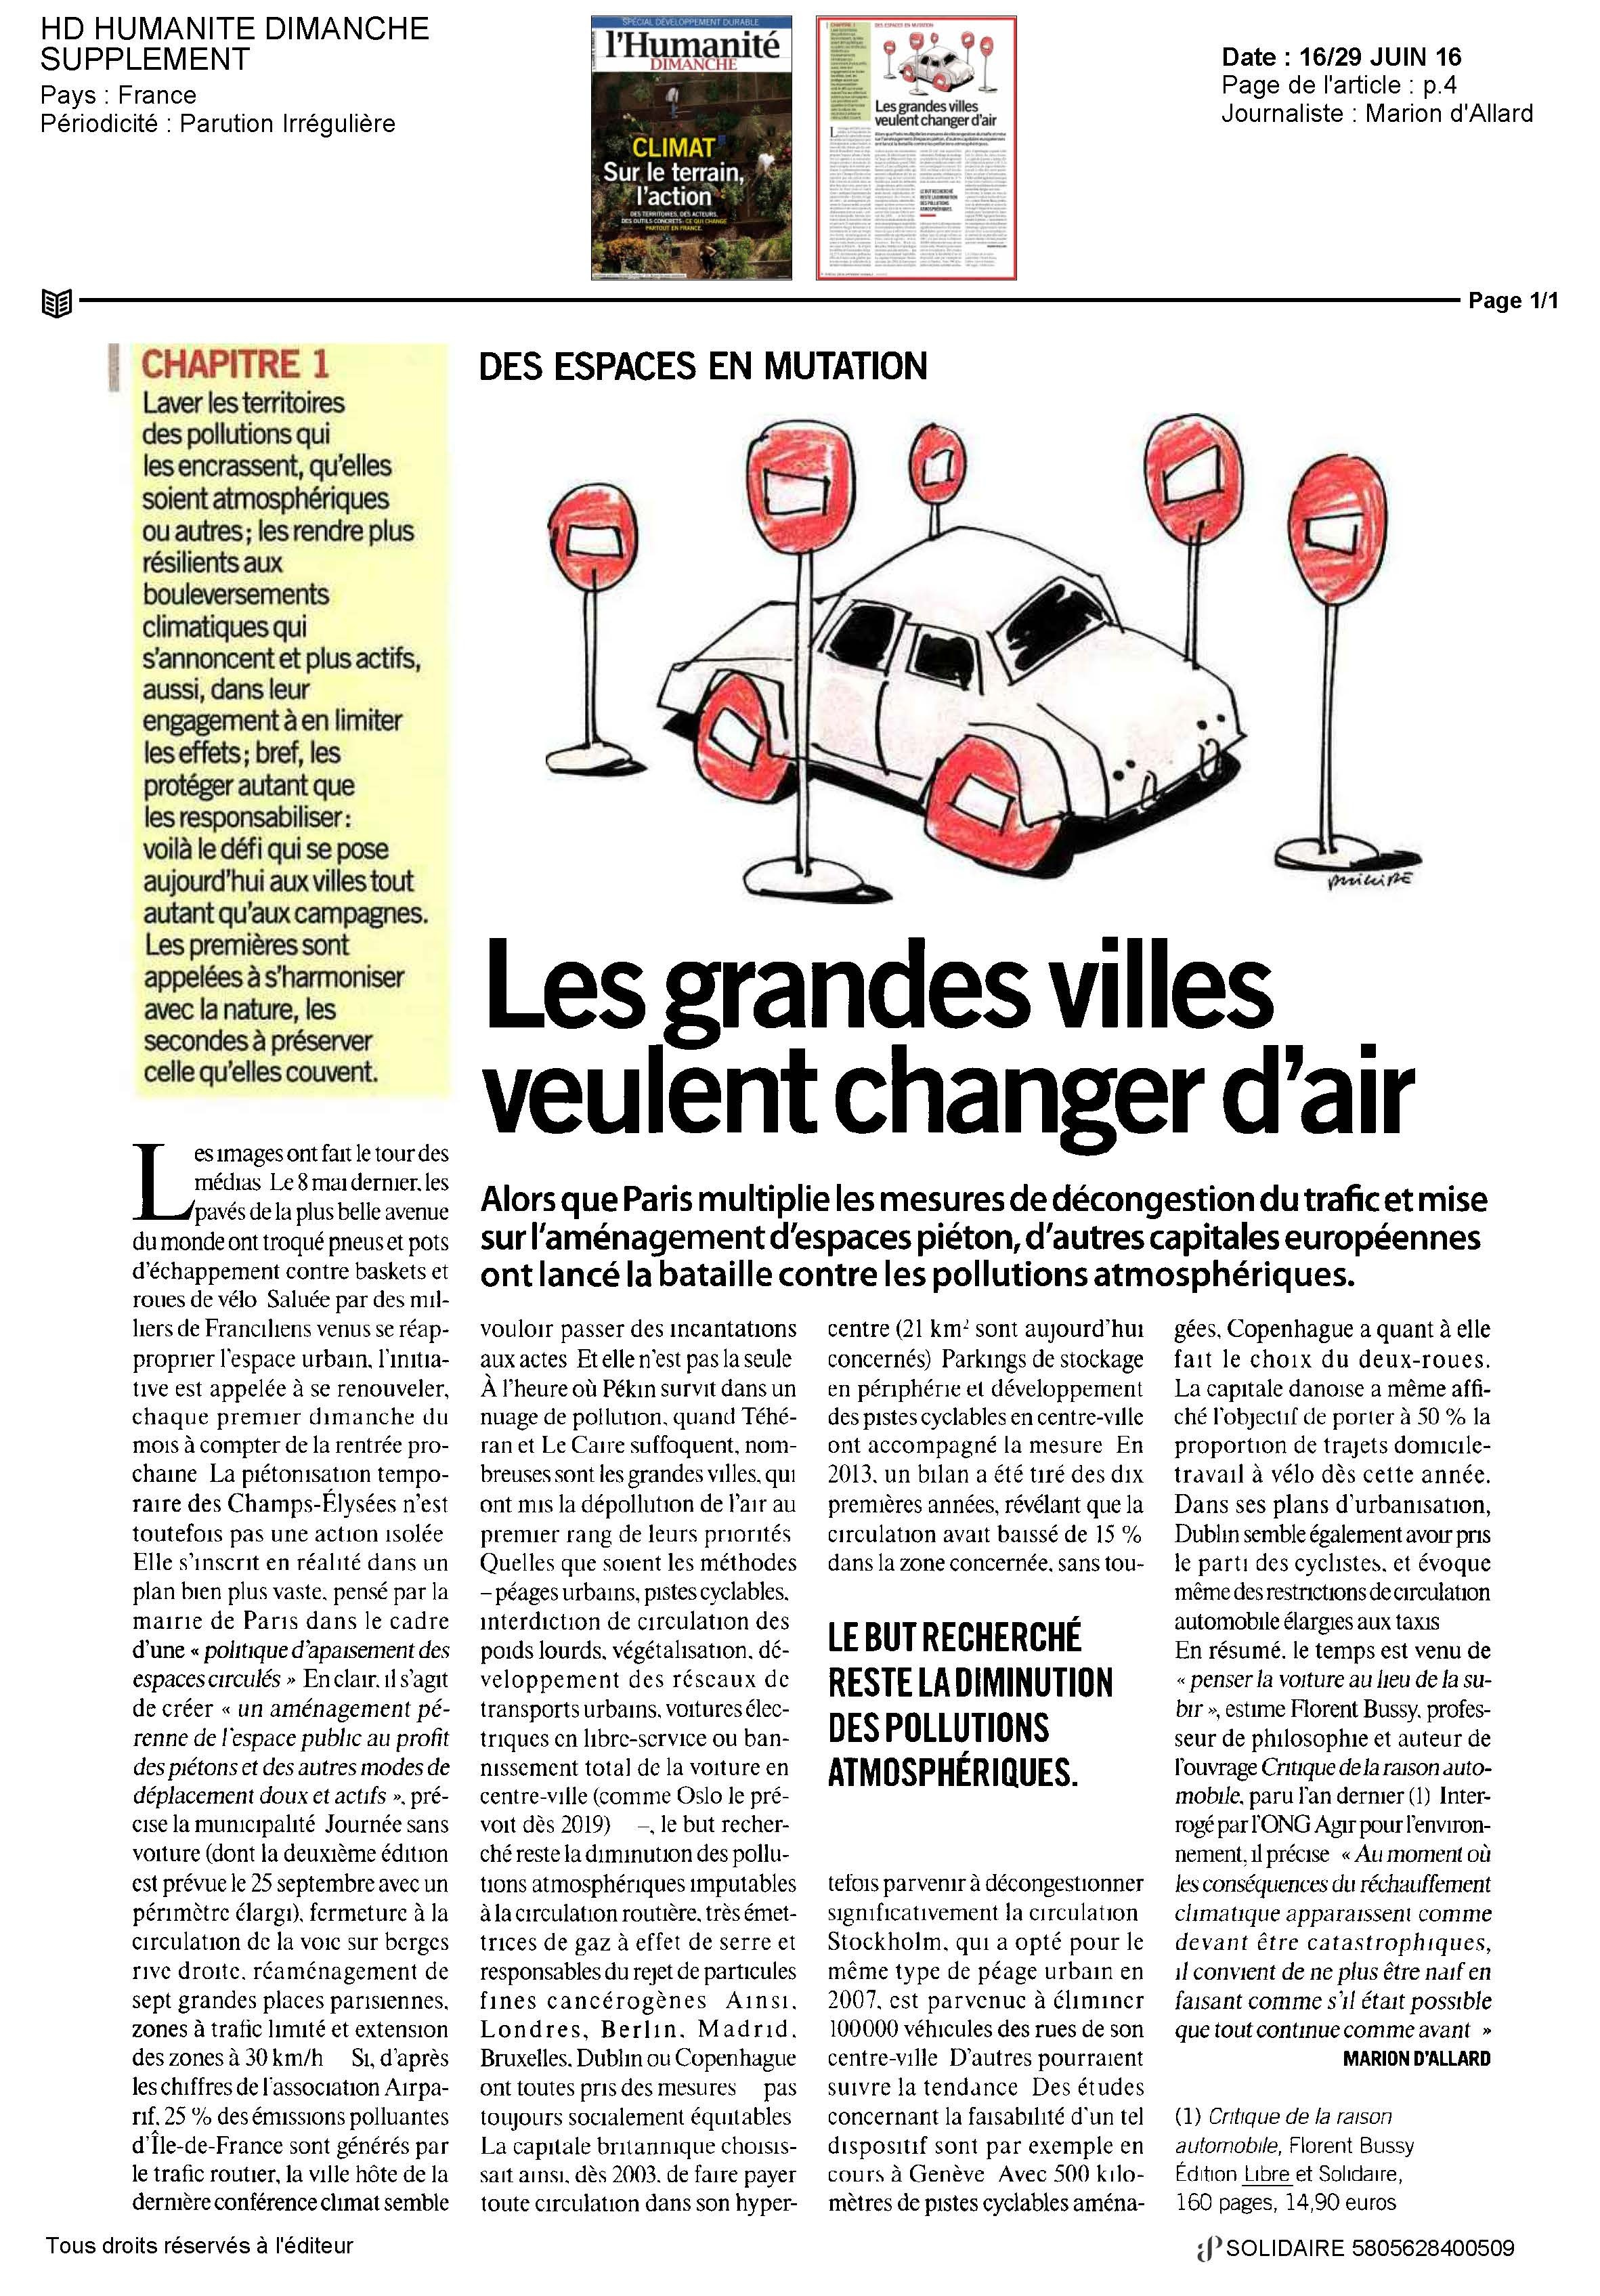 HD_HUMANITE_DIMANCHE_SUPPLEMENT-16_29_JUIN_16-Critique_de_la_raison_automobile